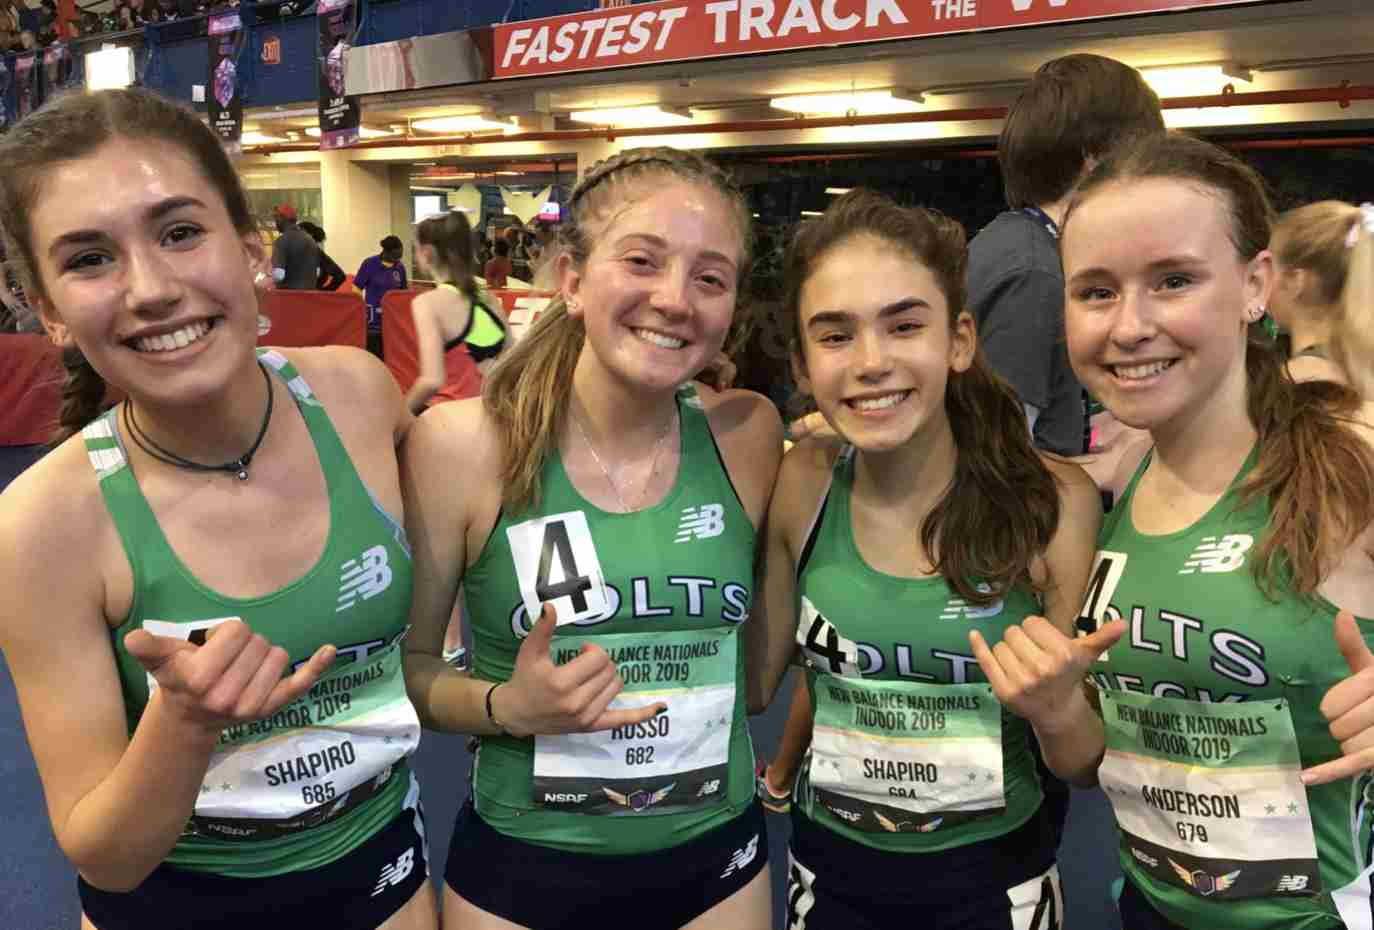 Natalie Shapiro, Delia Russo, Lilly Shapiro Catie Anderson Colts Neck track running